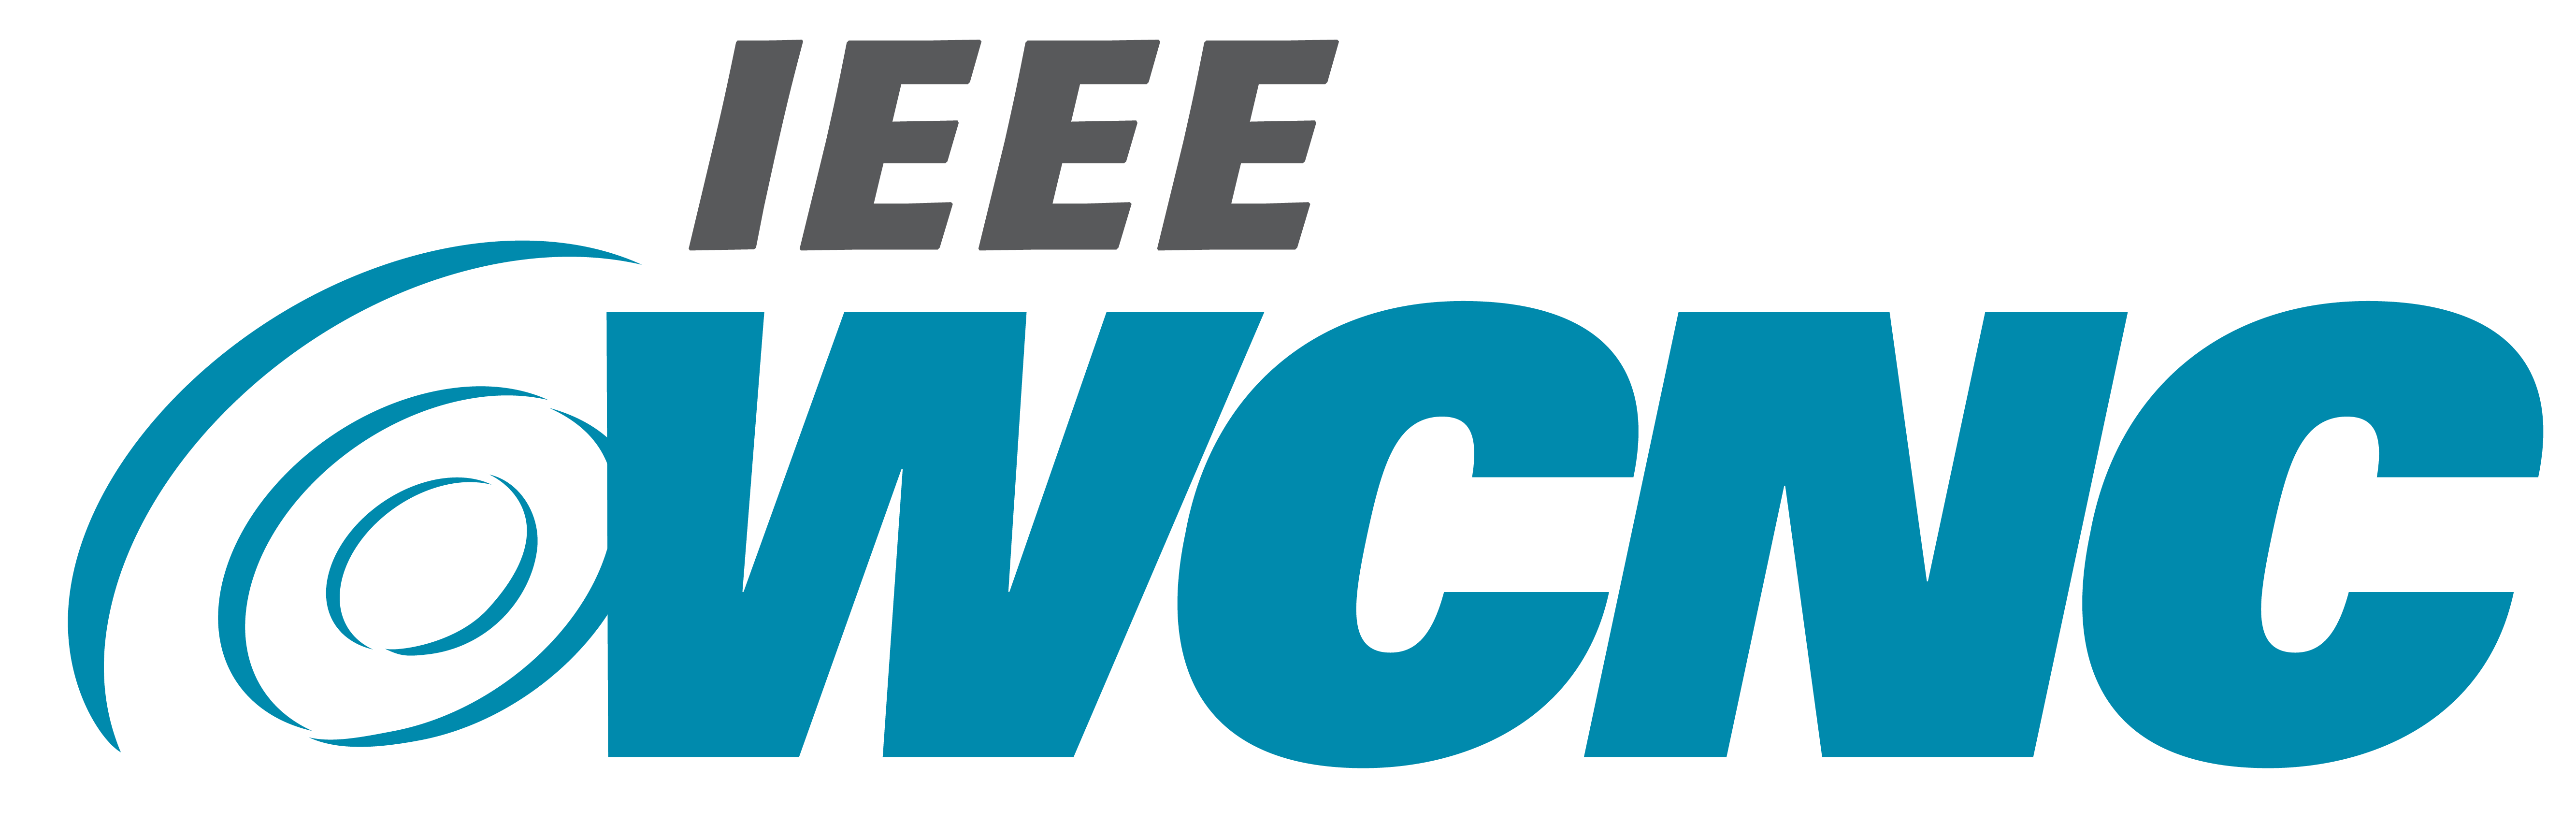 IEEE Wireless Communications and Networking Conference - IEEE WCNC 2019